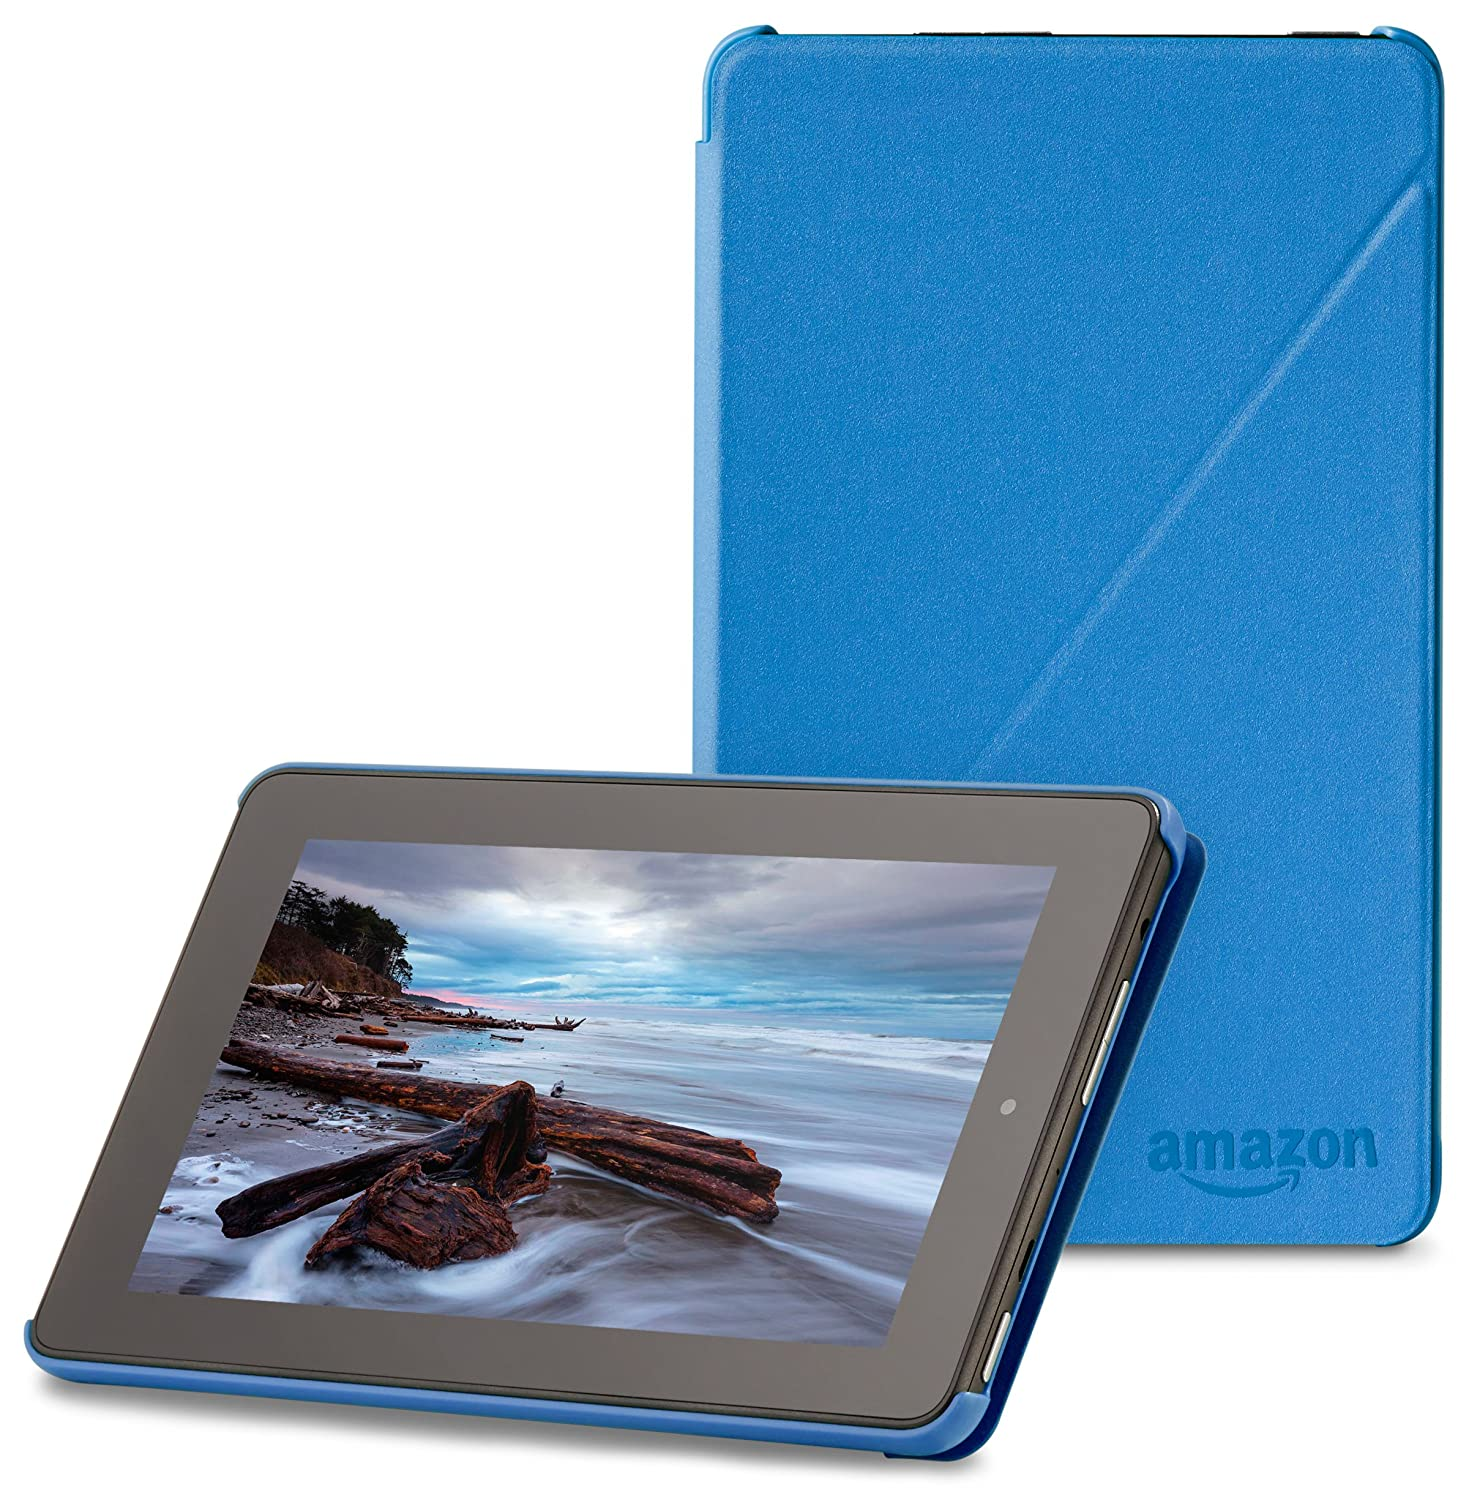 "Amazon Fire 7"" (2015 release) Case - Slim Lightweight Standing Custom Fit Cover for Amazon Fire 7 Inch Tablet, Blue"